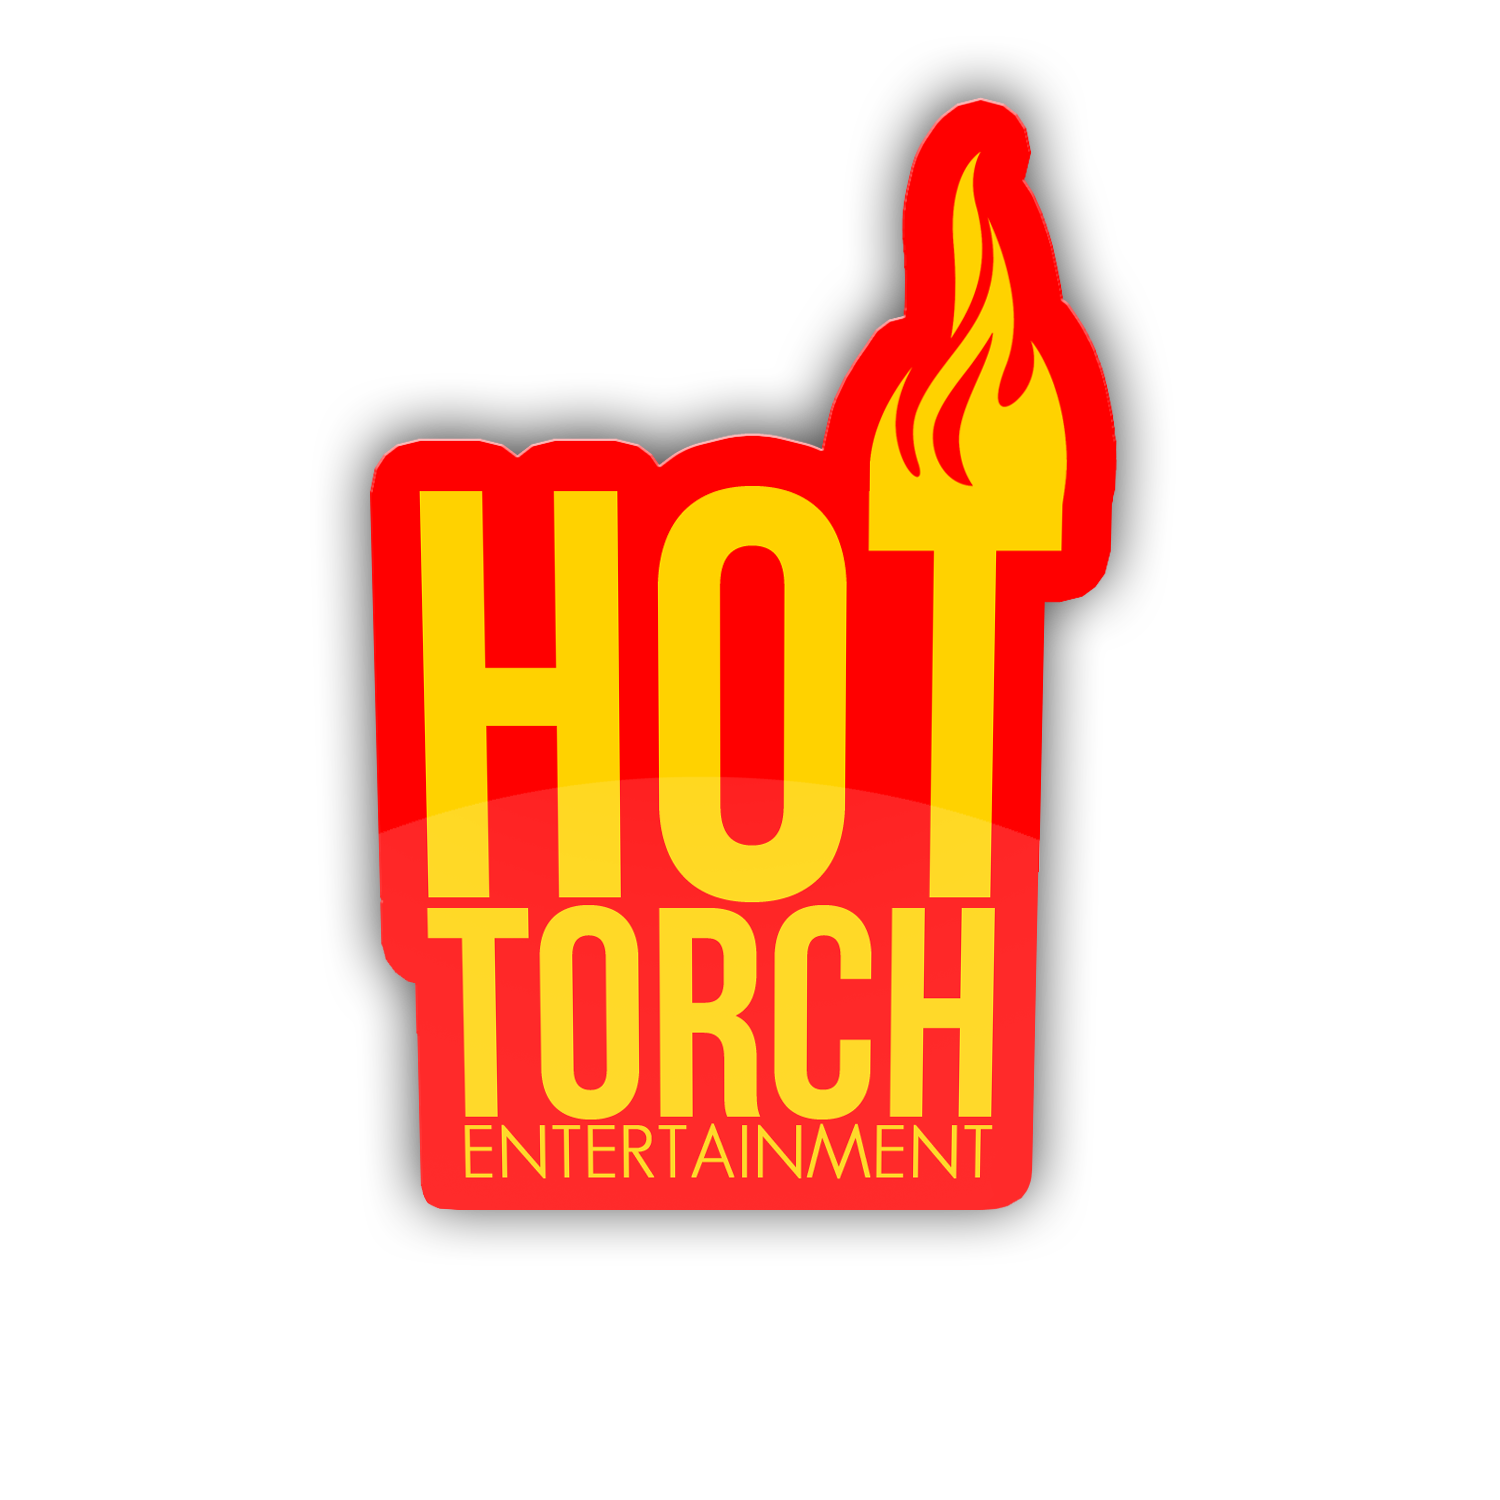 Hot Torch Entertainment